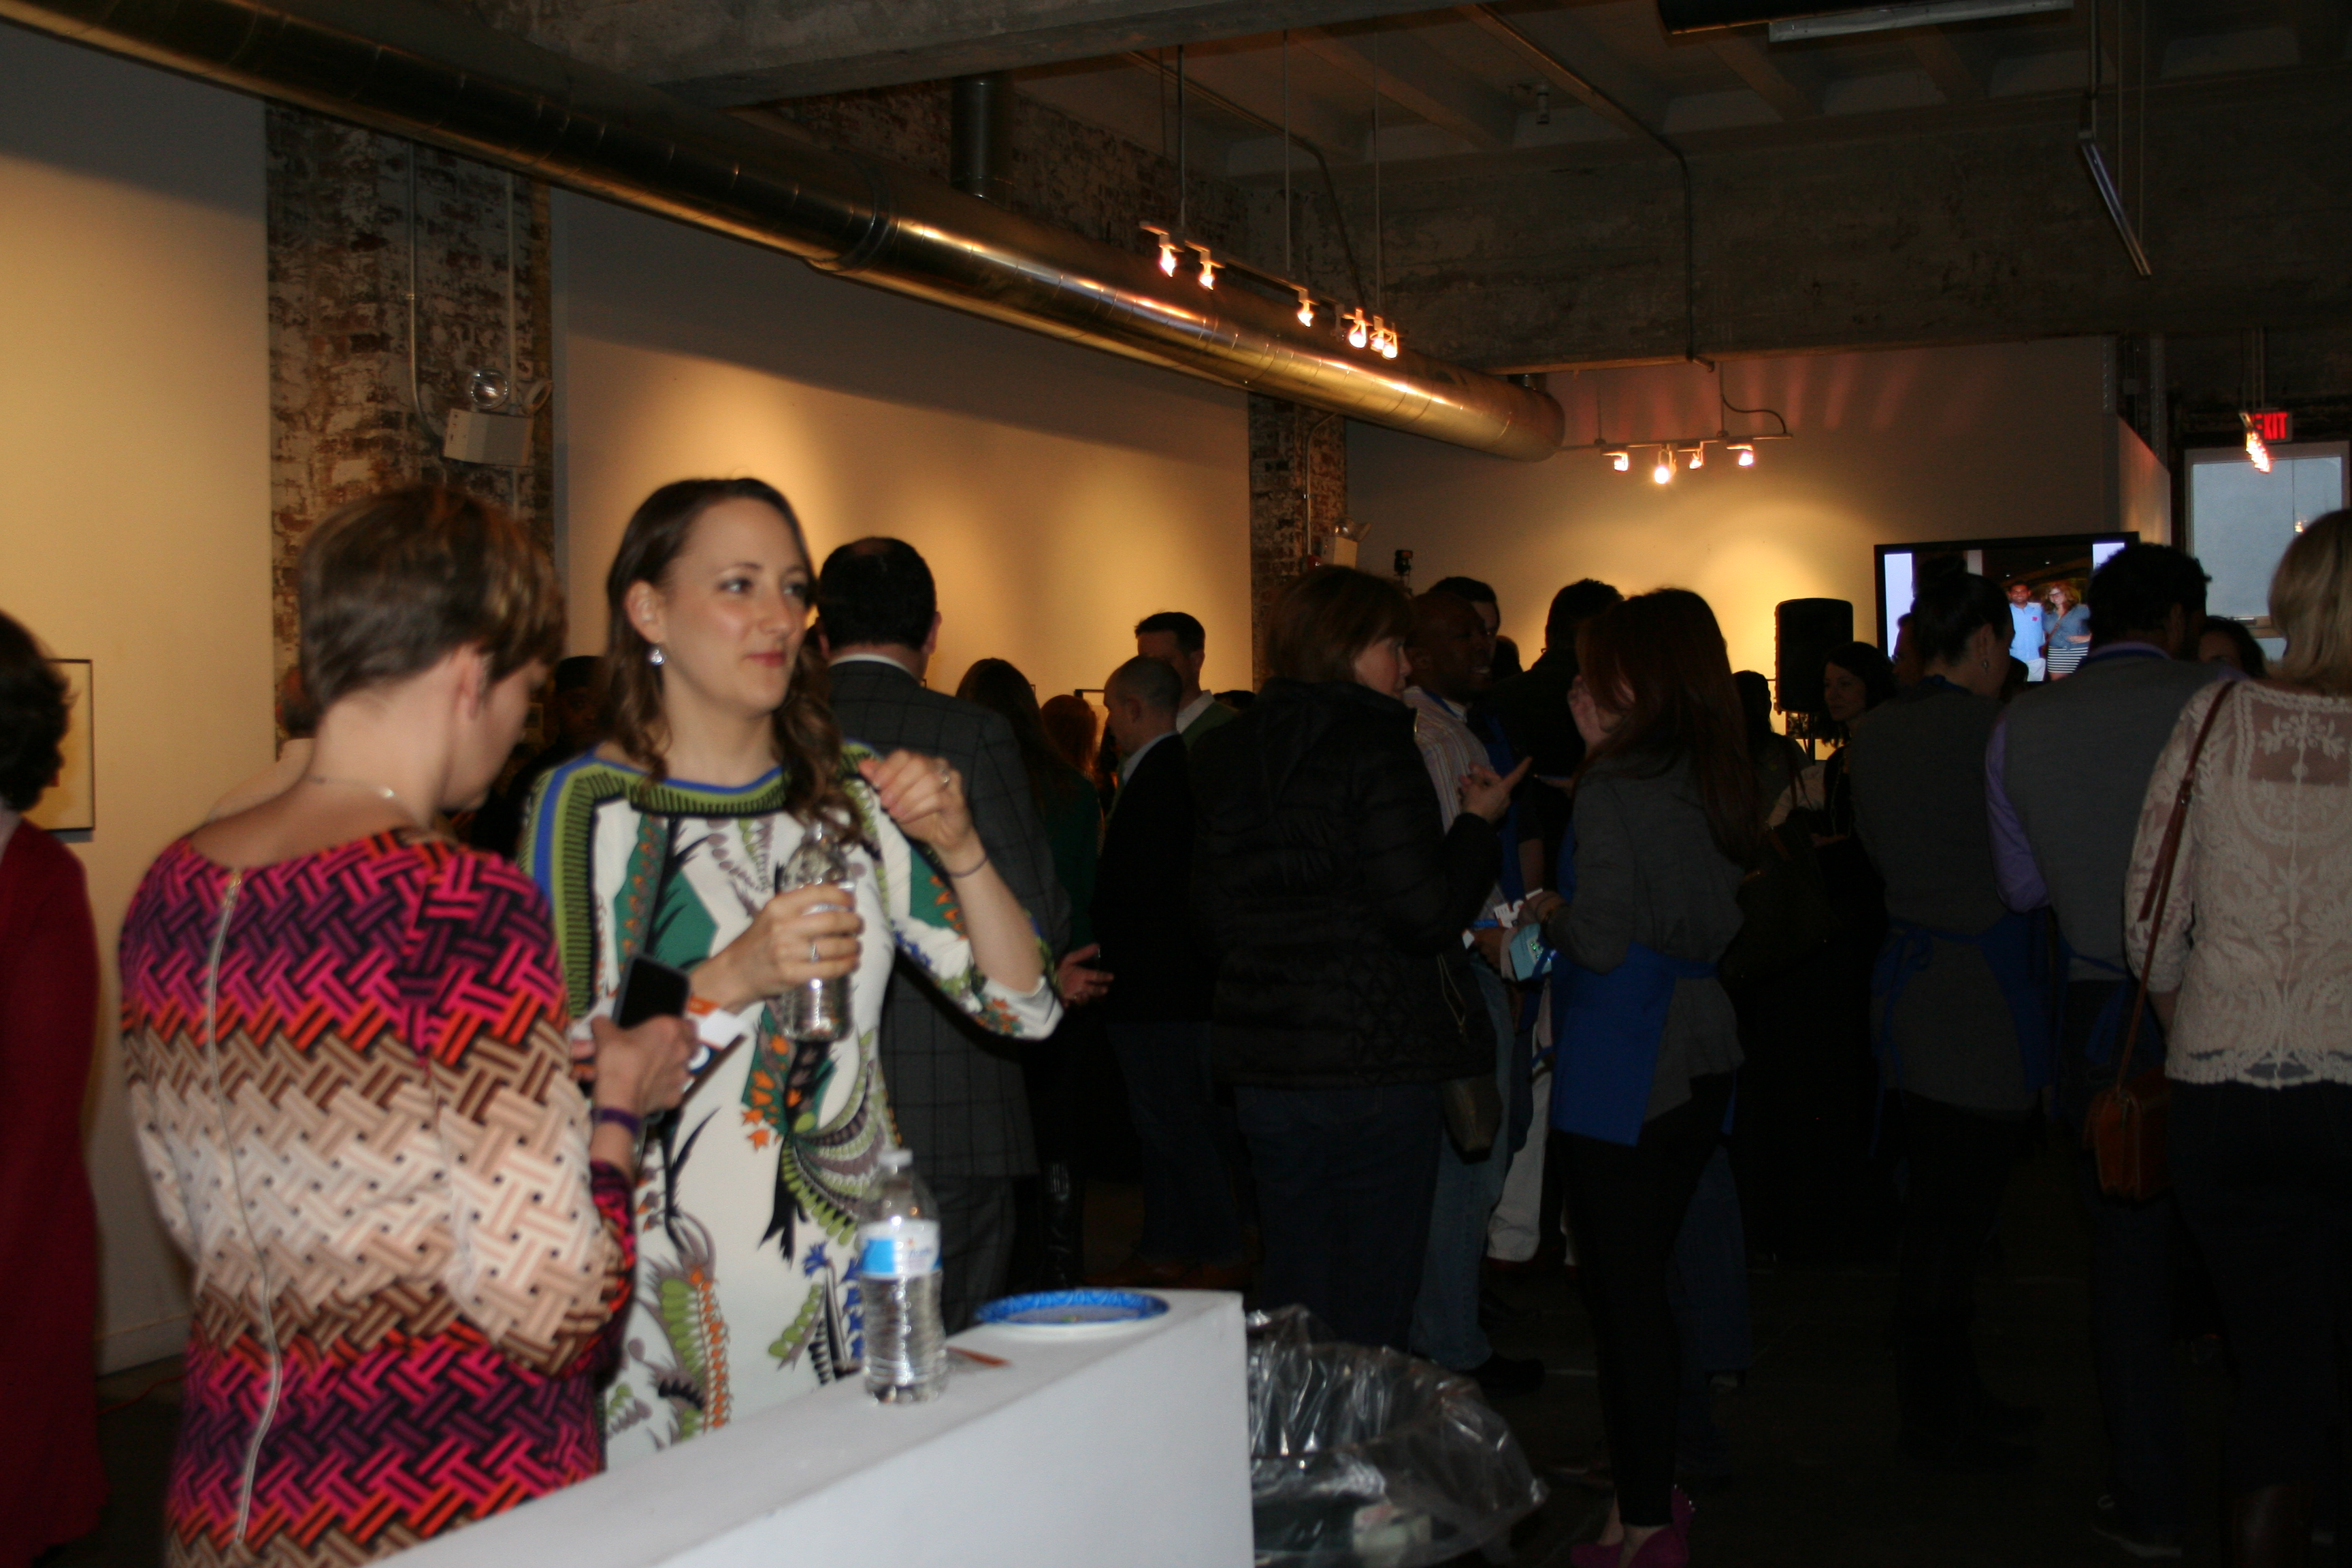 About 200 guests attended Chris4Life's Eat4Life event at Longview Gallery to raise funds and provide healthy meal options. (Photo: Mark Heckathorn/DC on Heels)